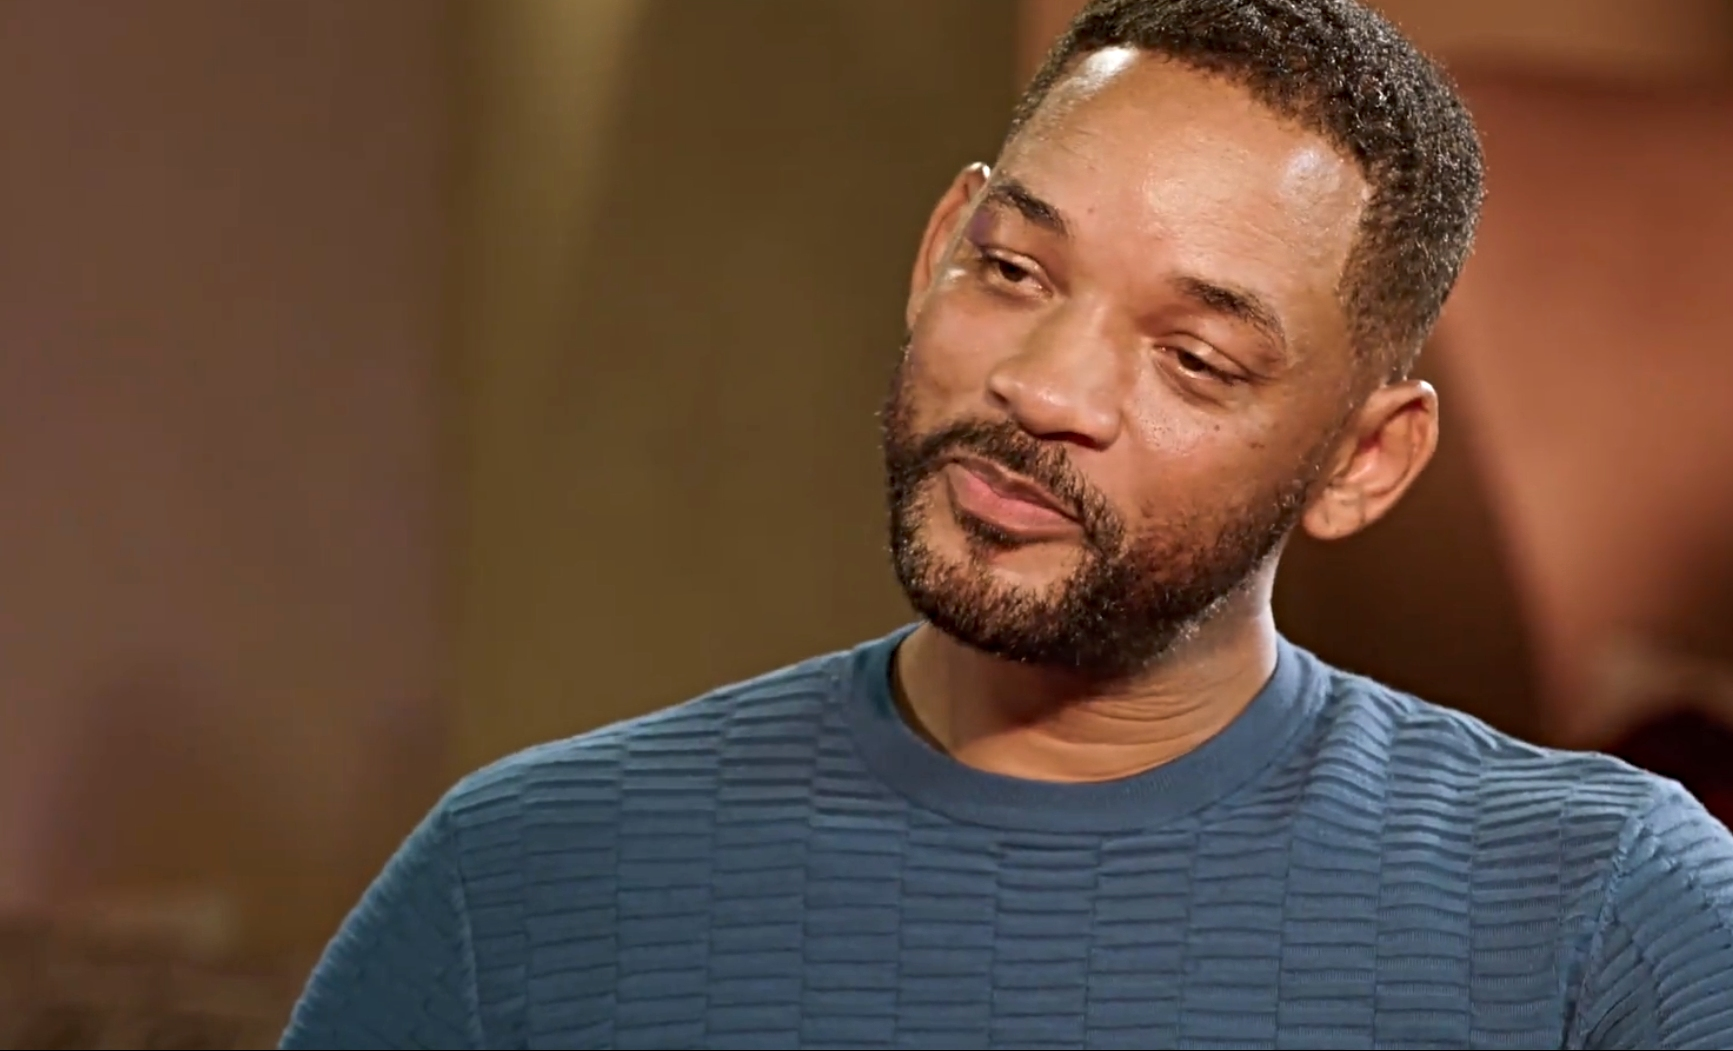 Will Smith at The Red Table Talk speaking to his wife Jada Pinkett Smith